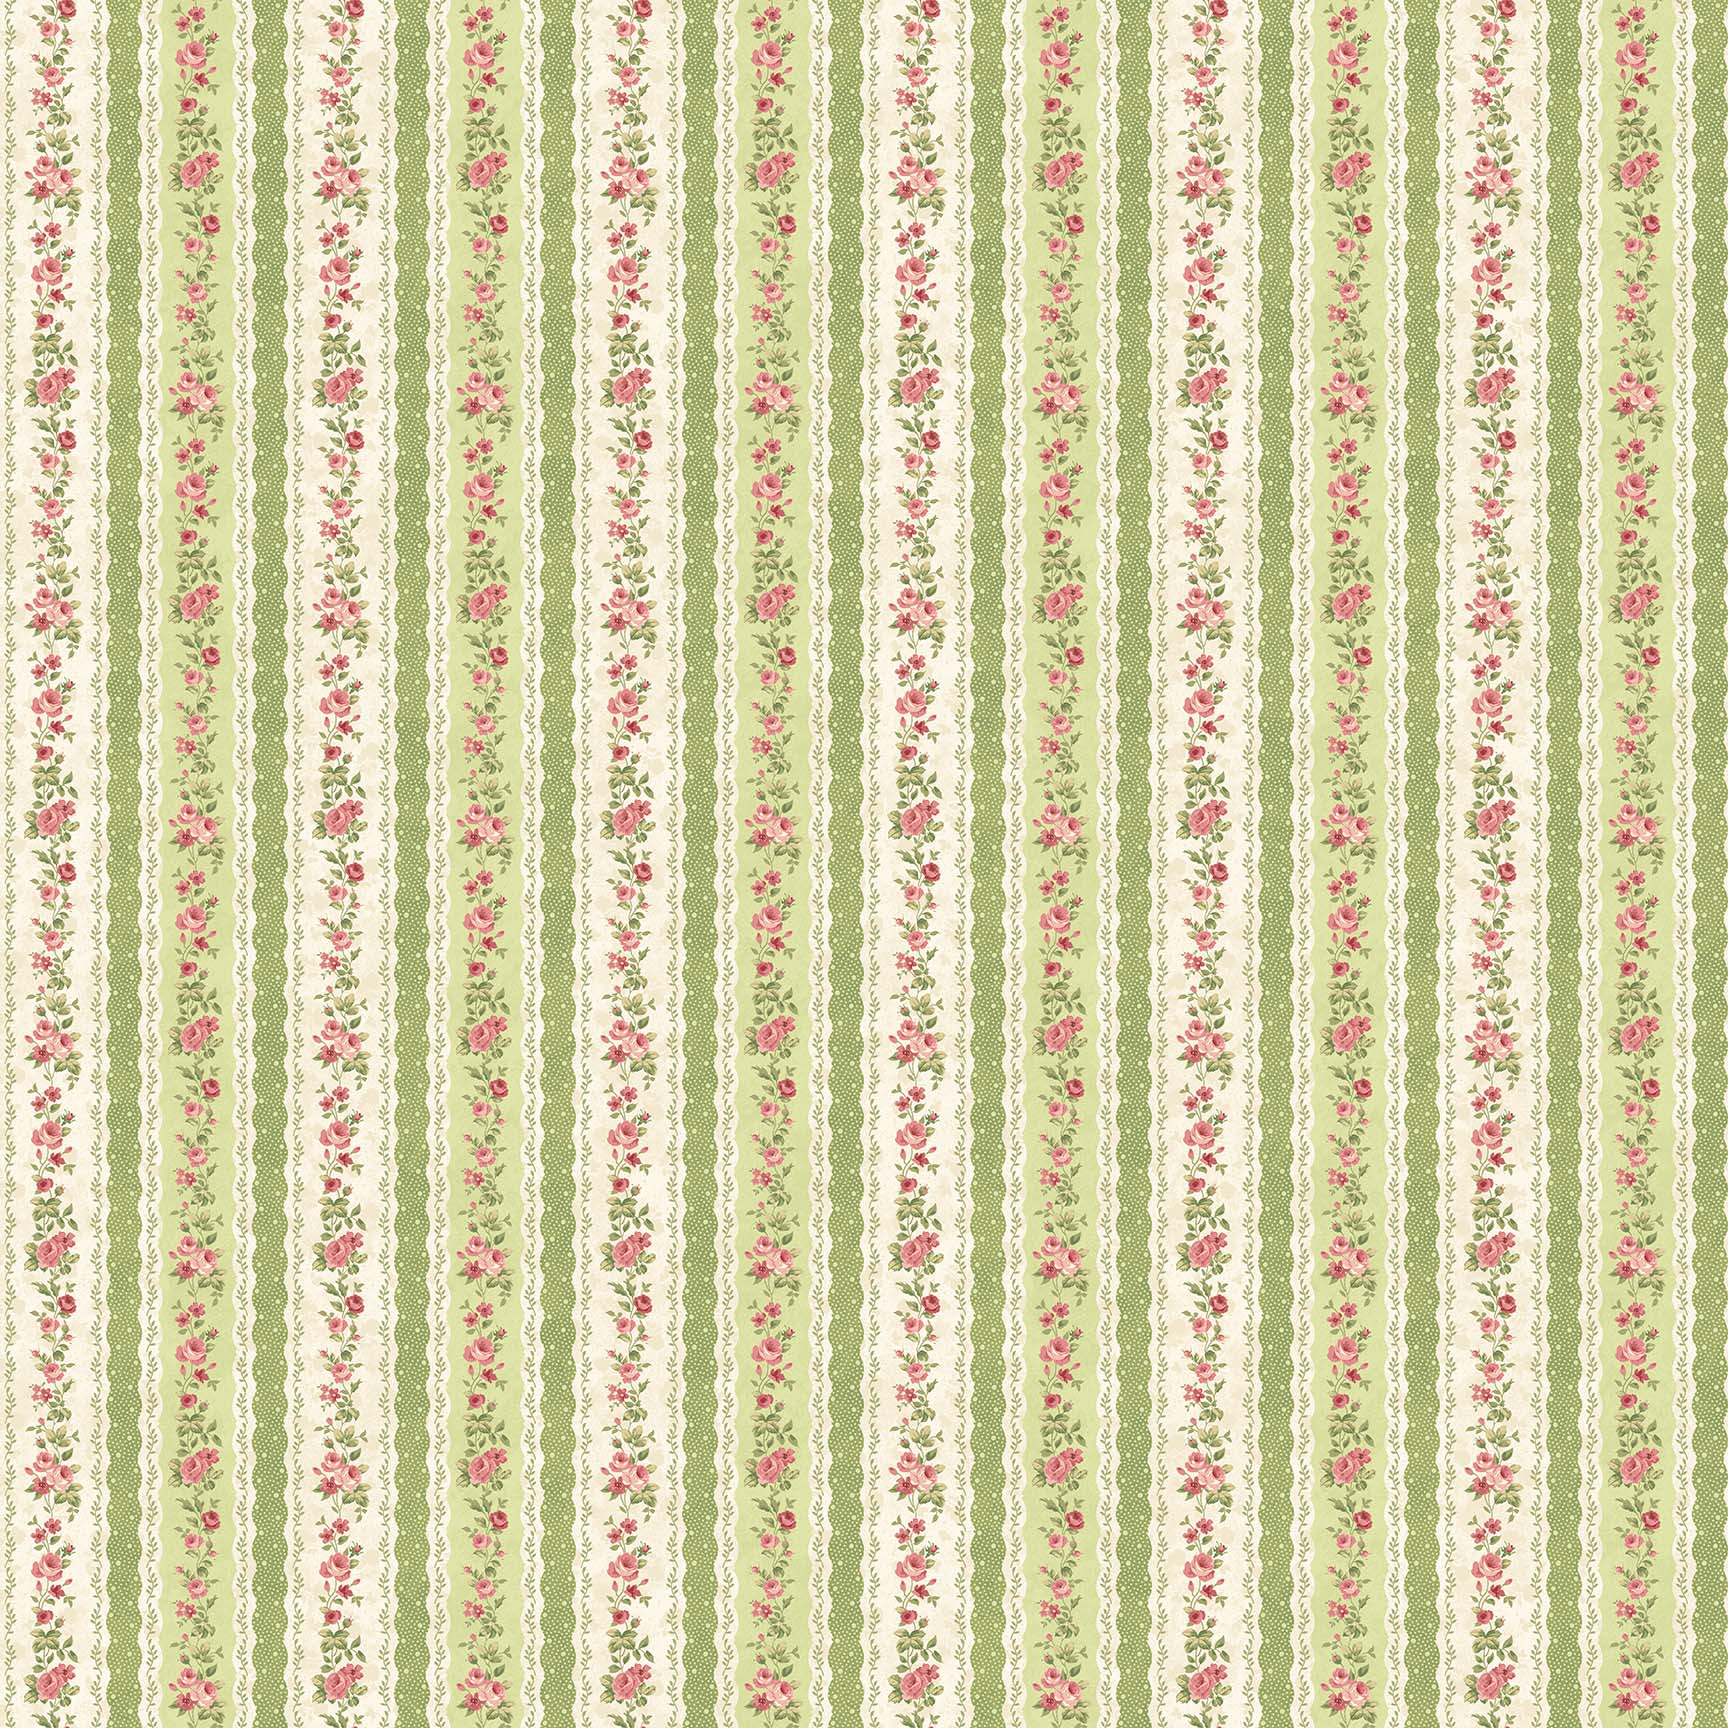 Vintage Rose - Stripes - green